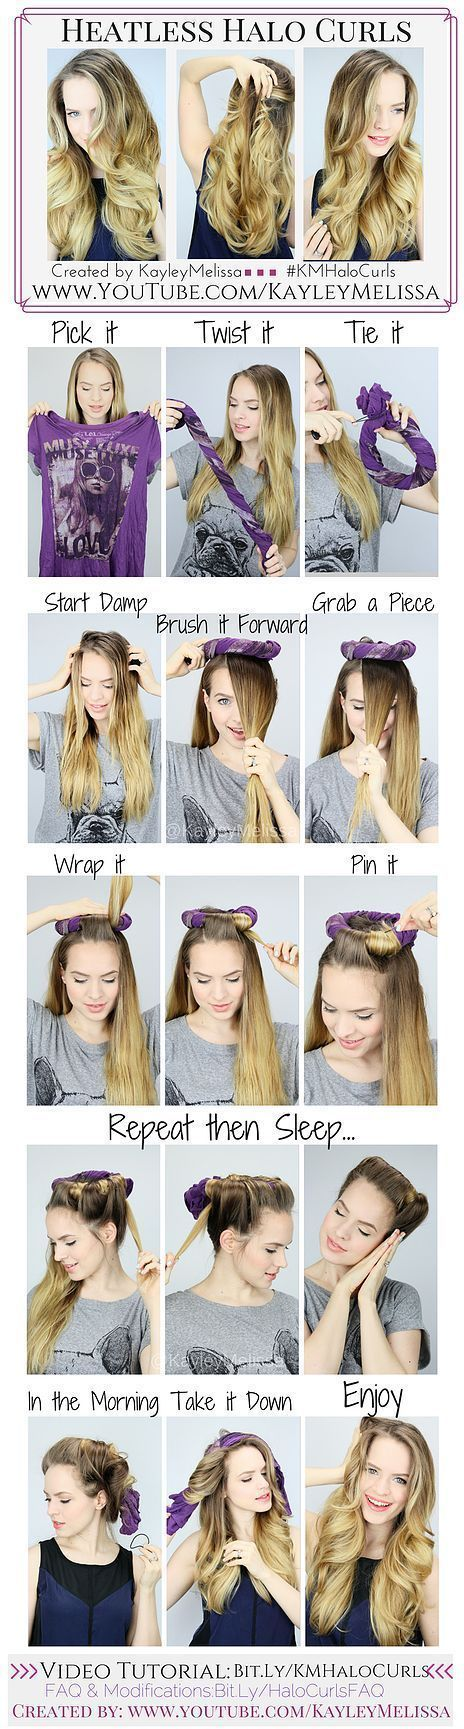 cool Heatless Halo Curls Hair Tutorial hair long hair curly hair diy hair hairstyles hair tutorials easy hairstyles - Pepino Haircuts